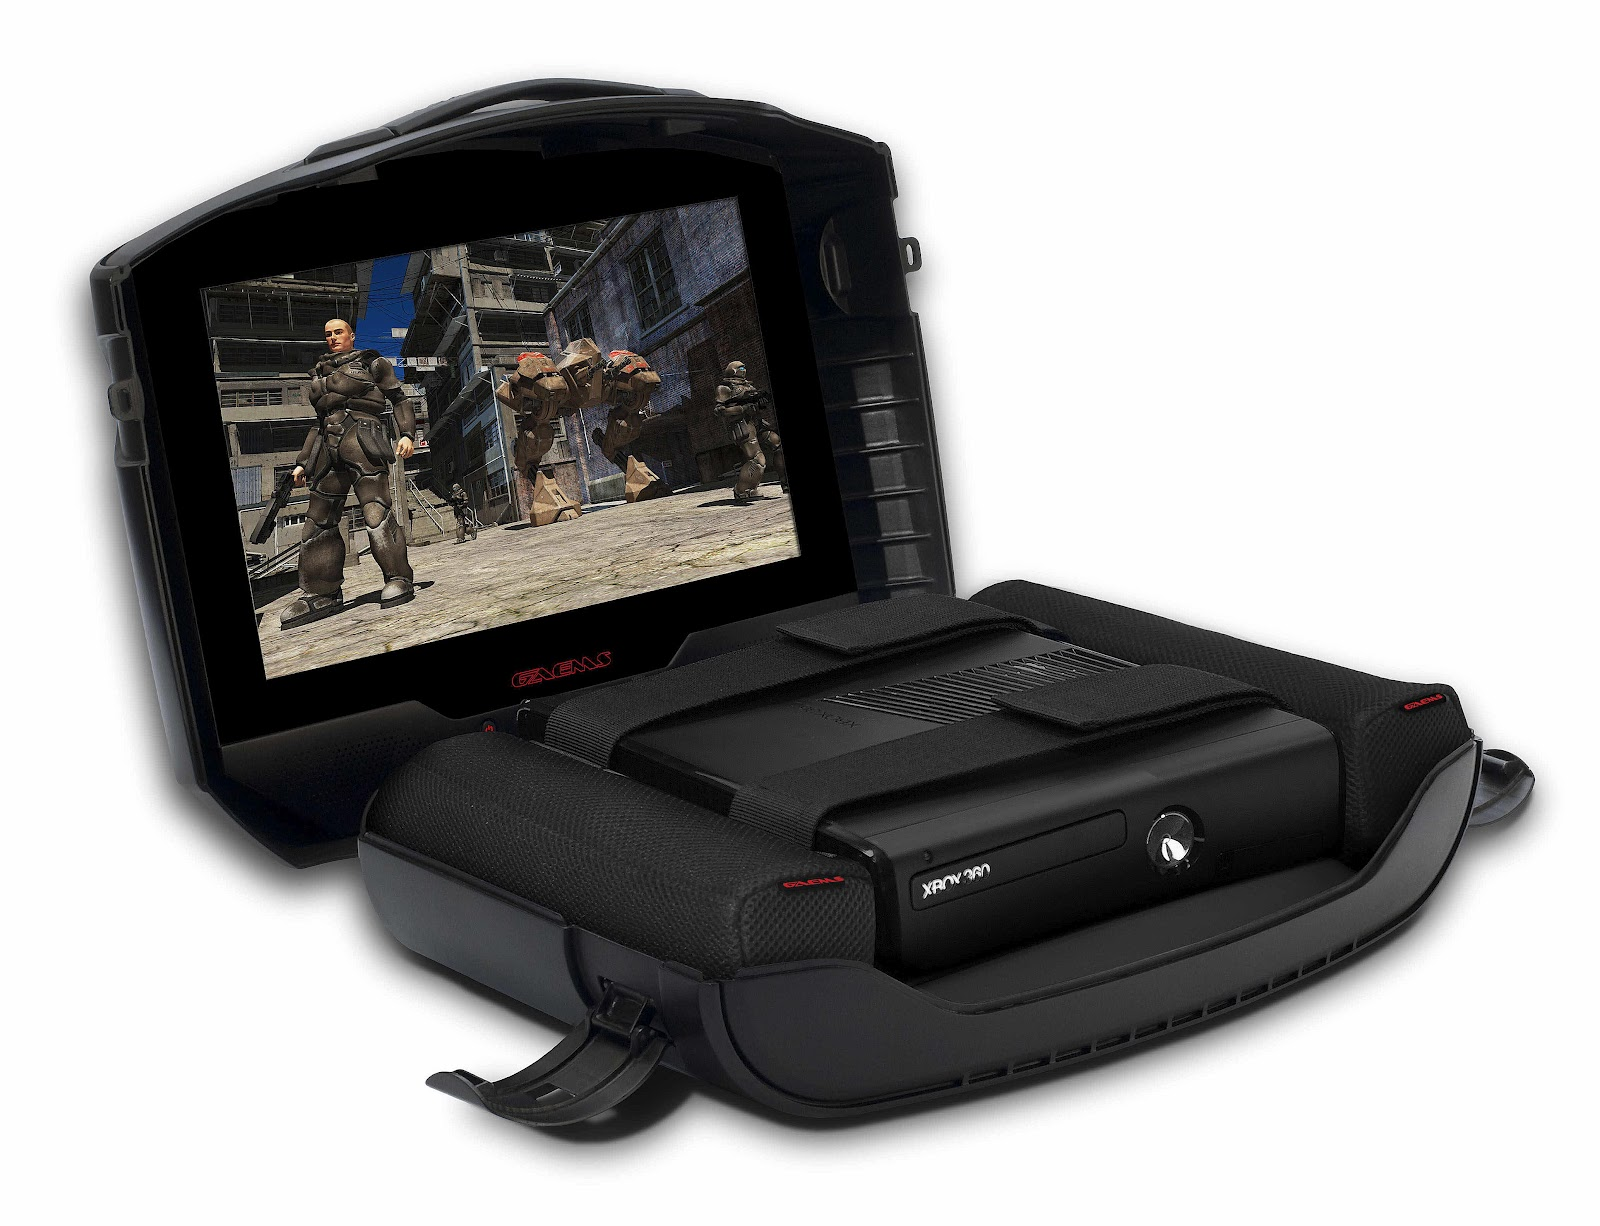 TOP GADGET INFO: GAEMS G155 MOBILE GAMING CASE (XBOX 360 ...